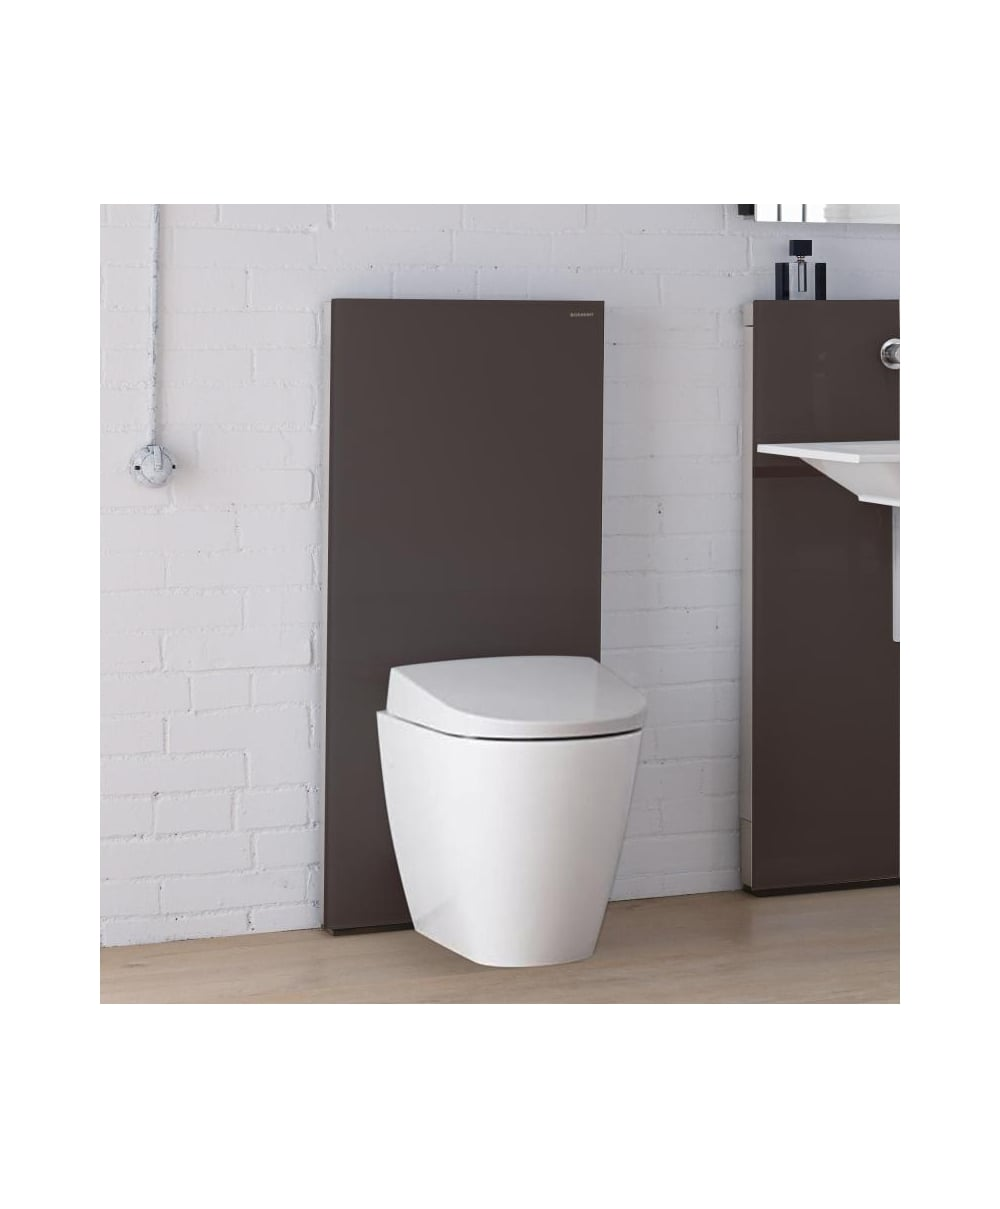 stand toilette mit splkasten latest geberit unterputz. Black Bedroom Furniture Sets. Home Design Ideas